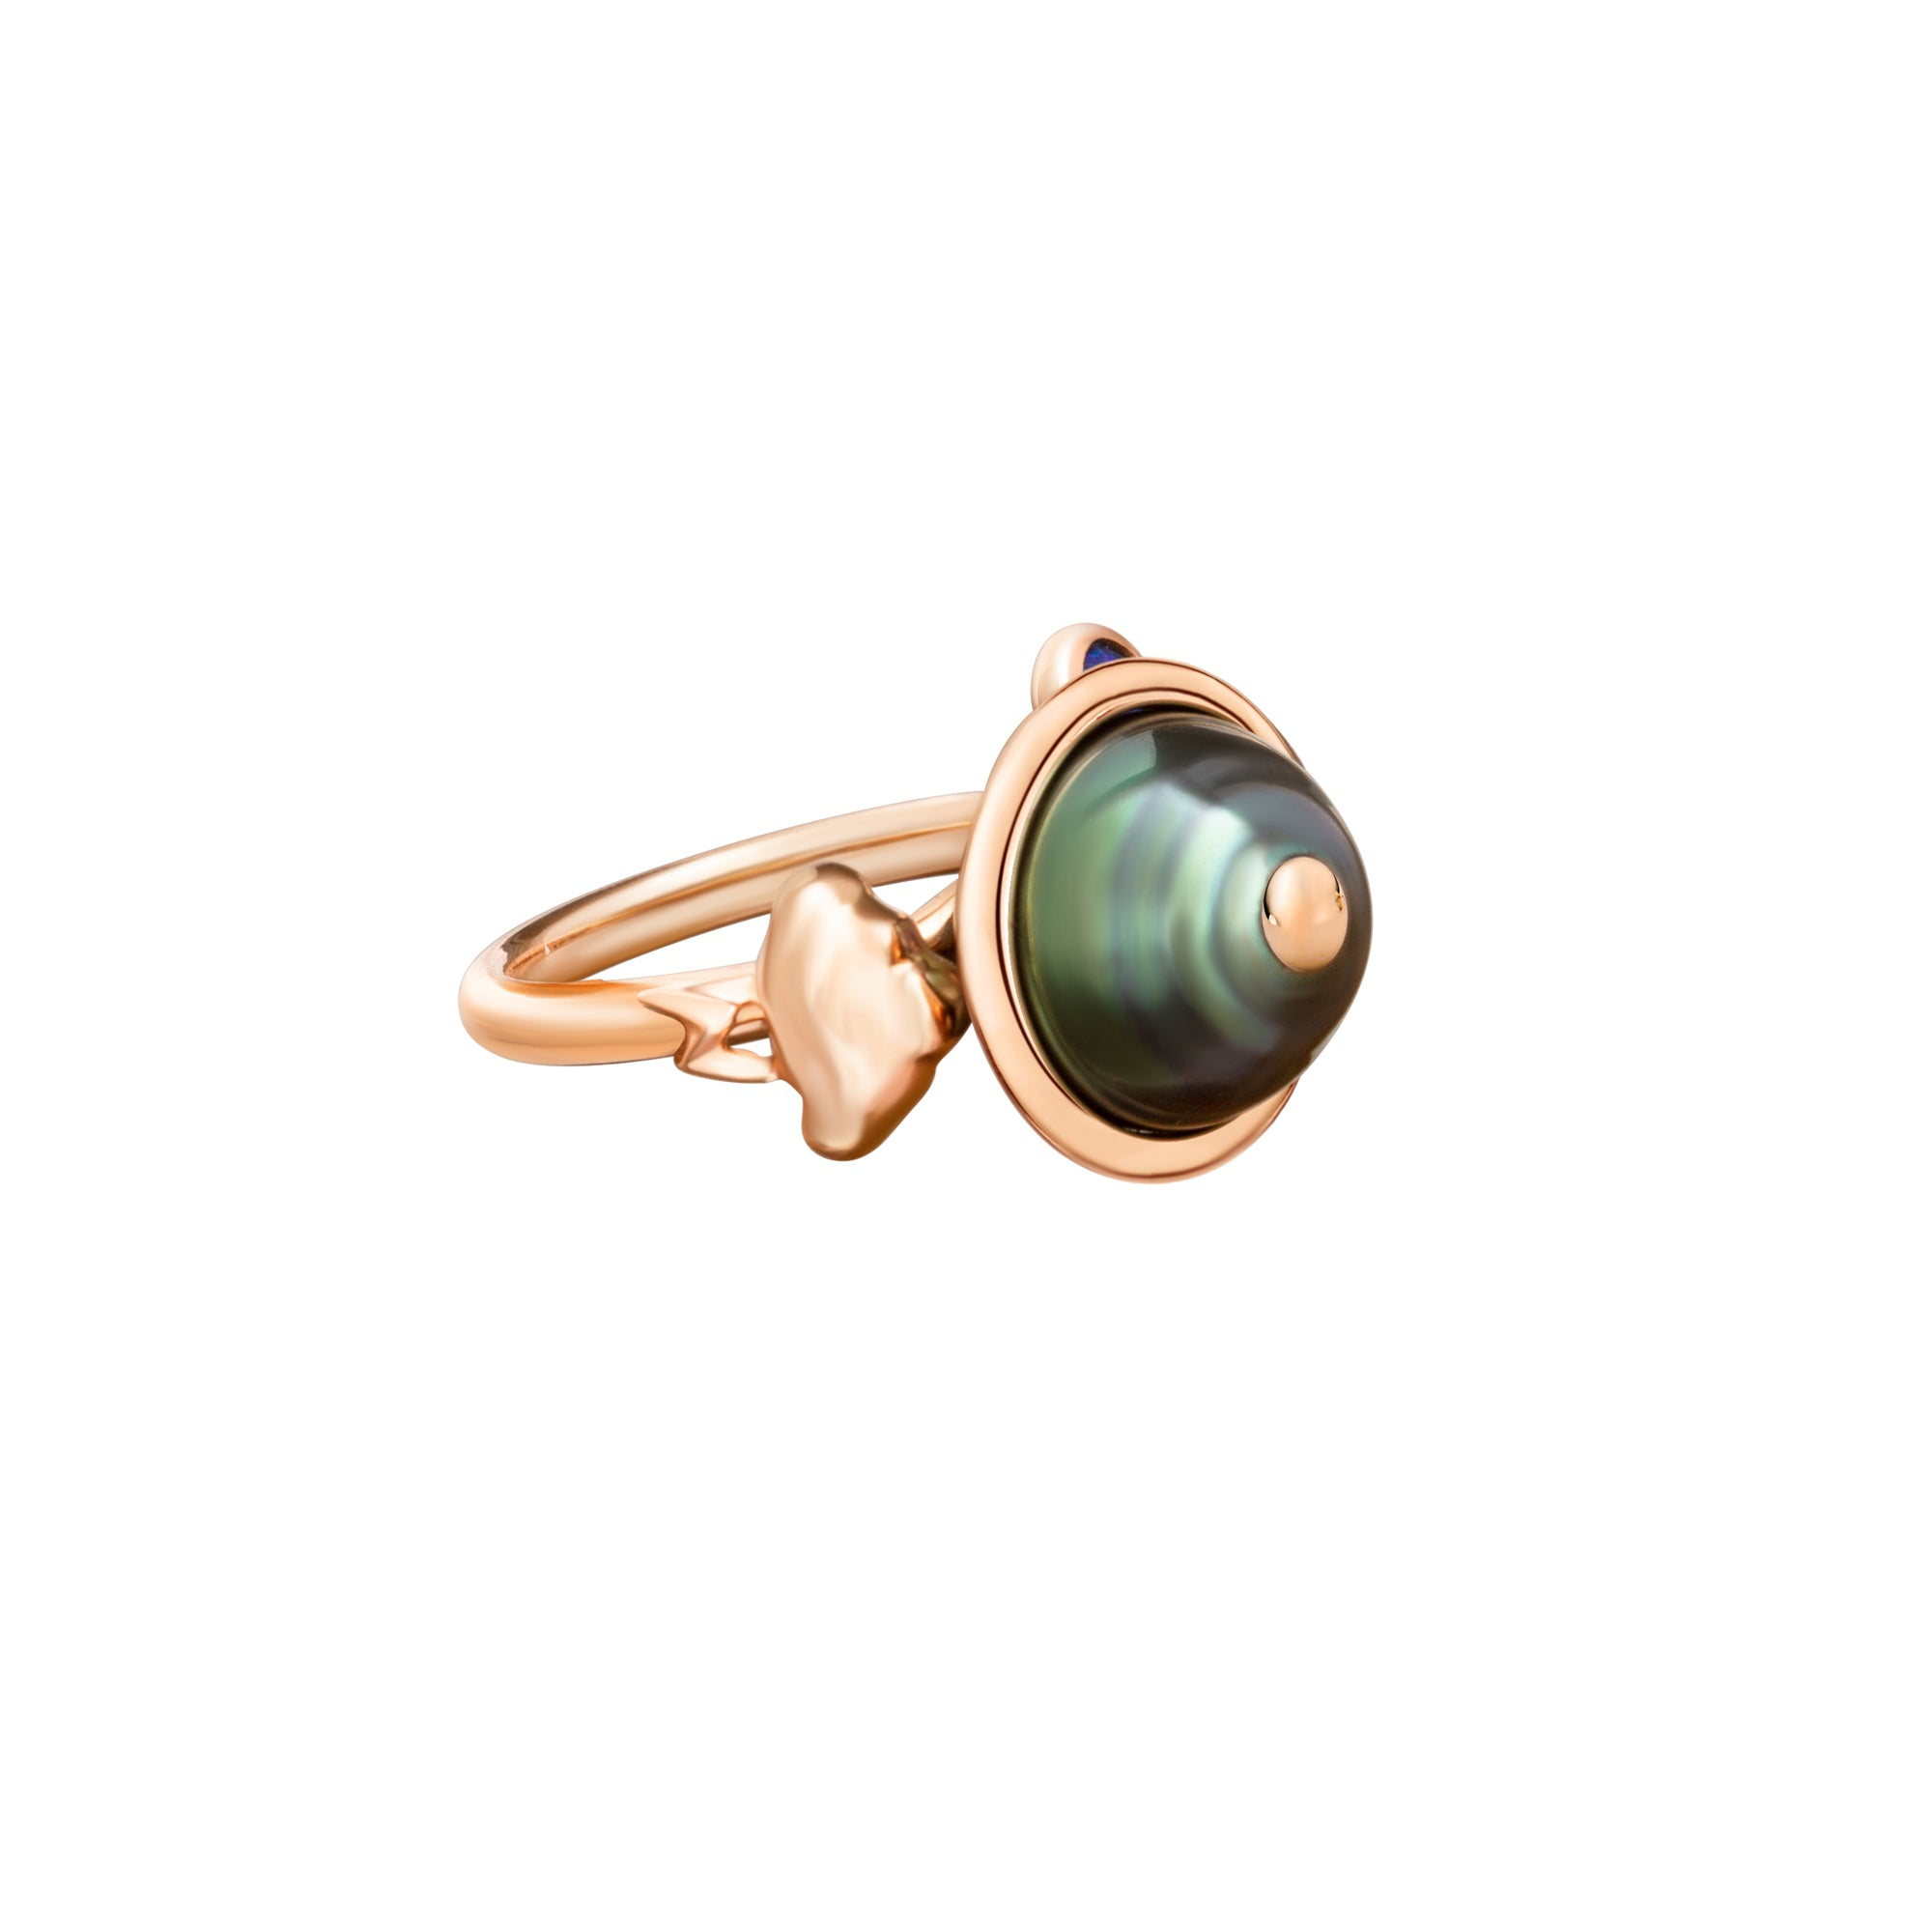 Planet Ring - Bibi van der Velden - Ring | Broken English Jewelry